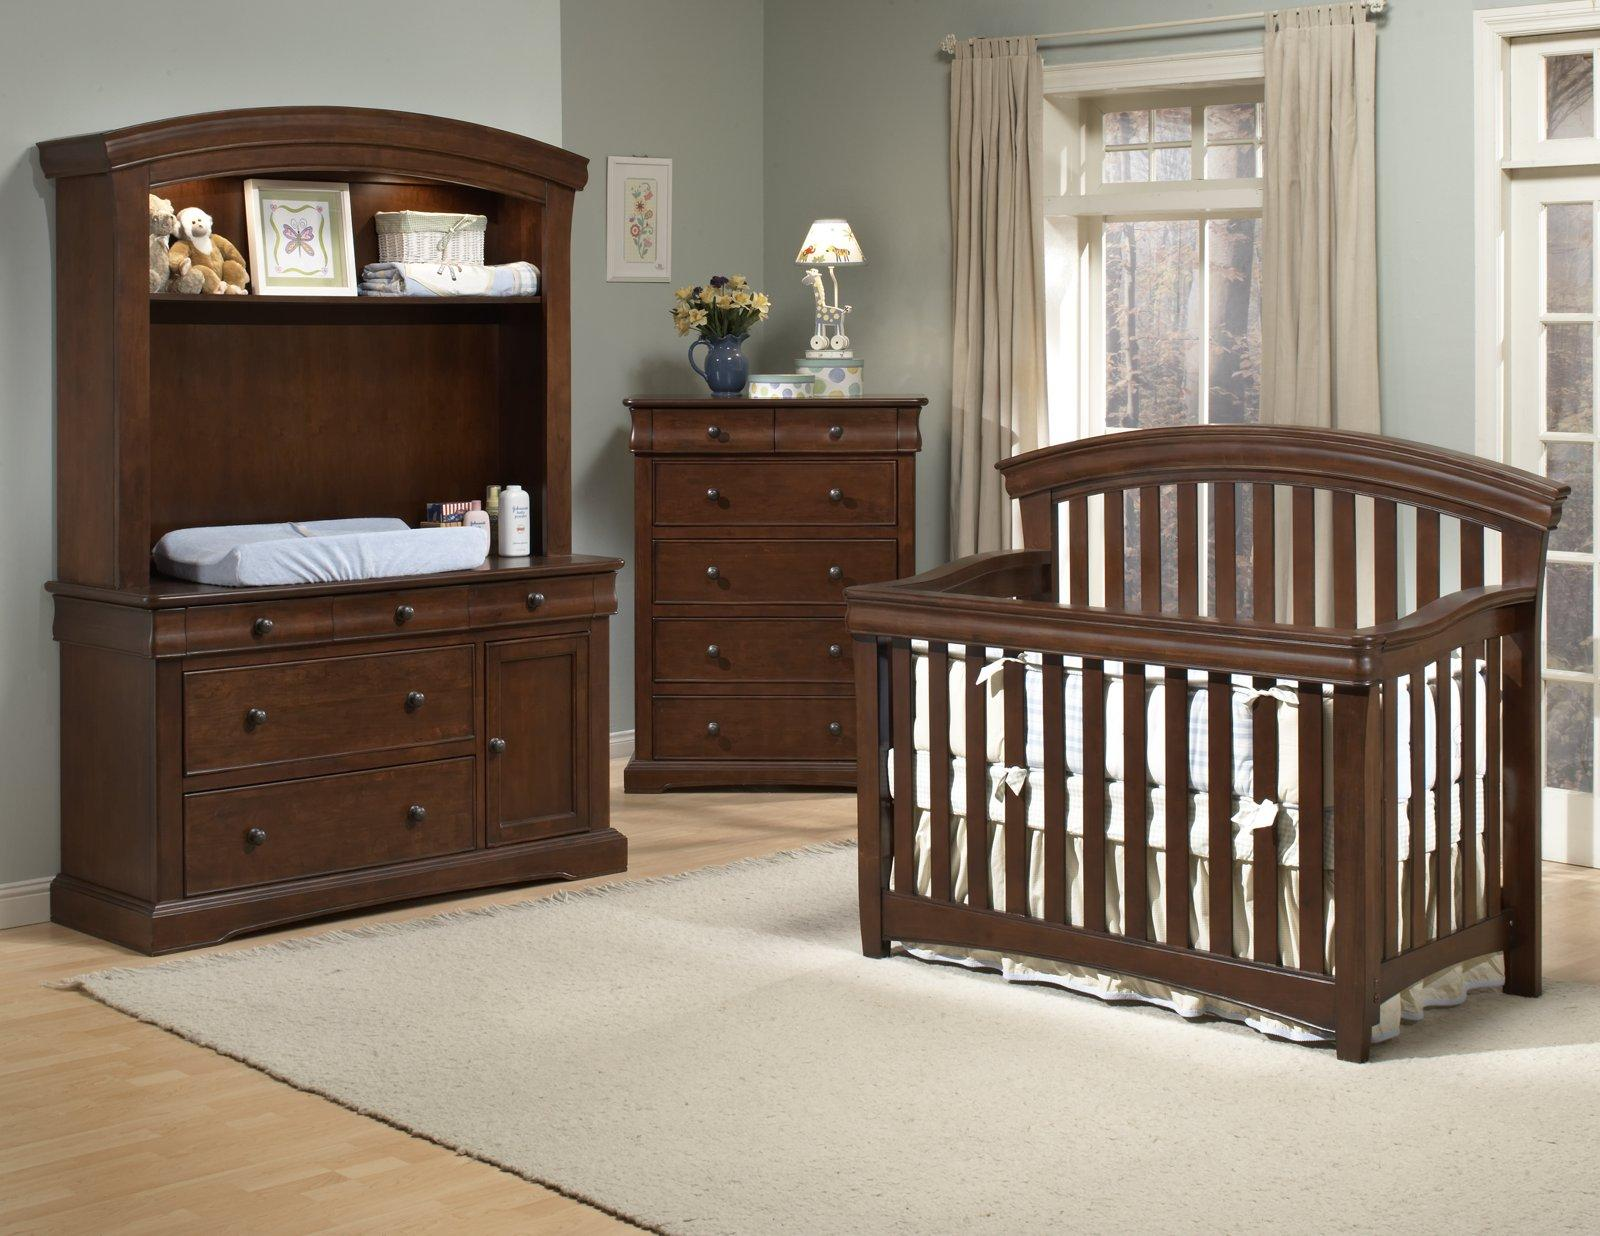 geneva crib design dp westwood rail toddler baby amazon chocolate cribs com guard mist